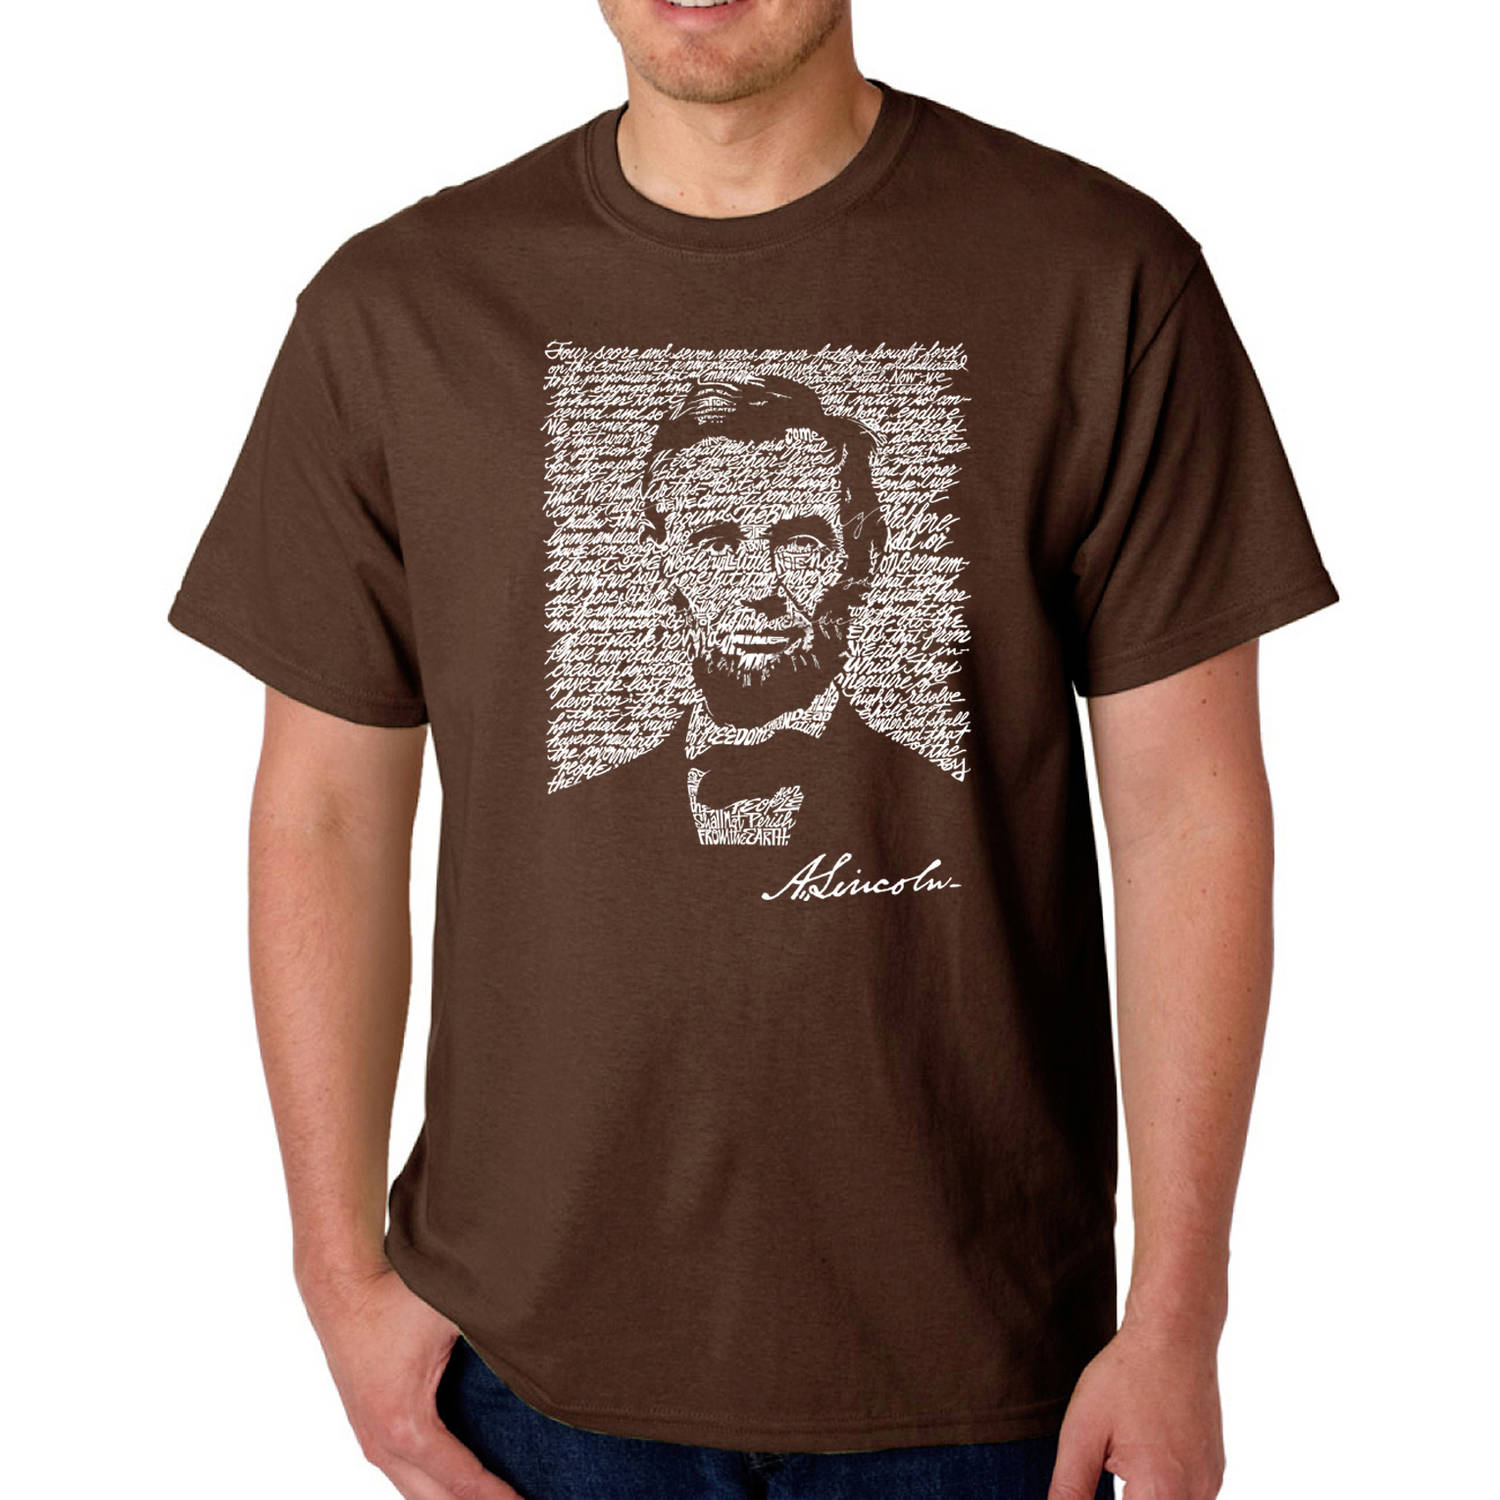 Los Angeles Pop Art Big Men's T-shirt - Abraham Lincoln - Gettysburg Address